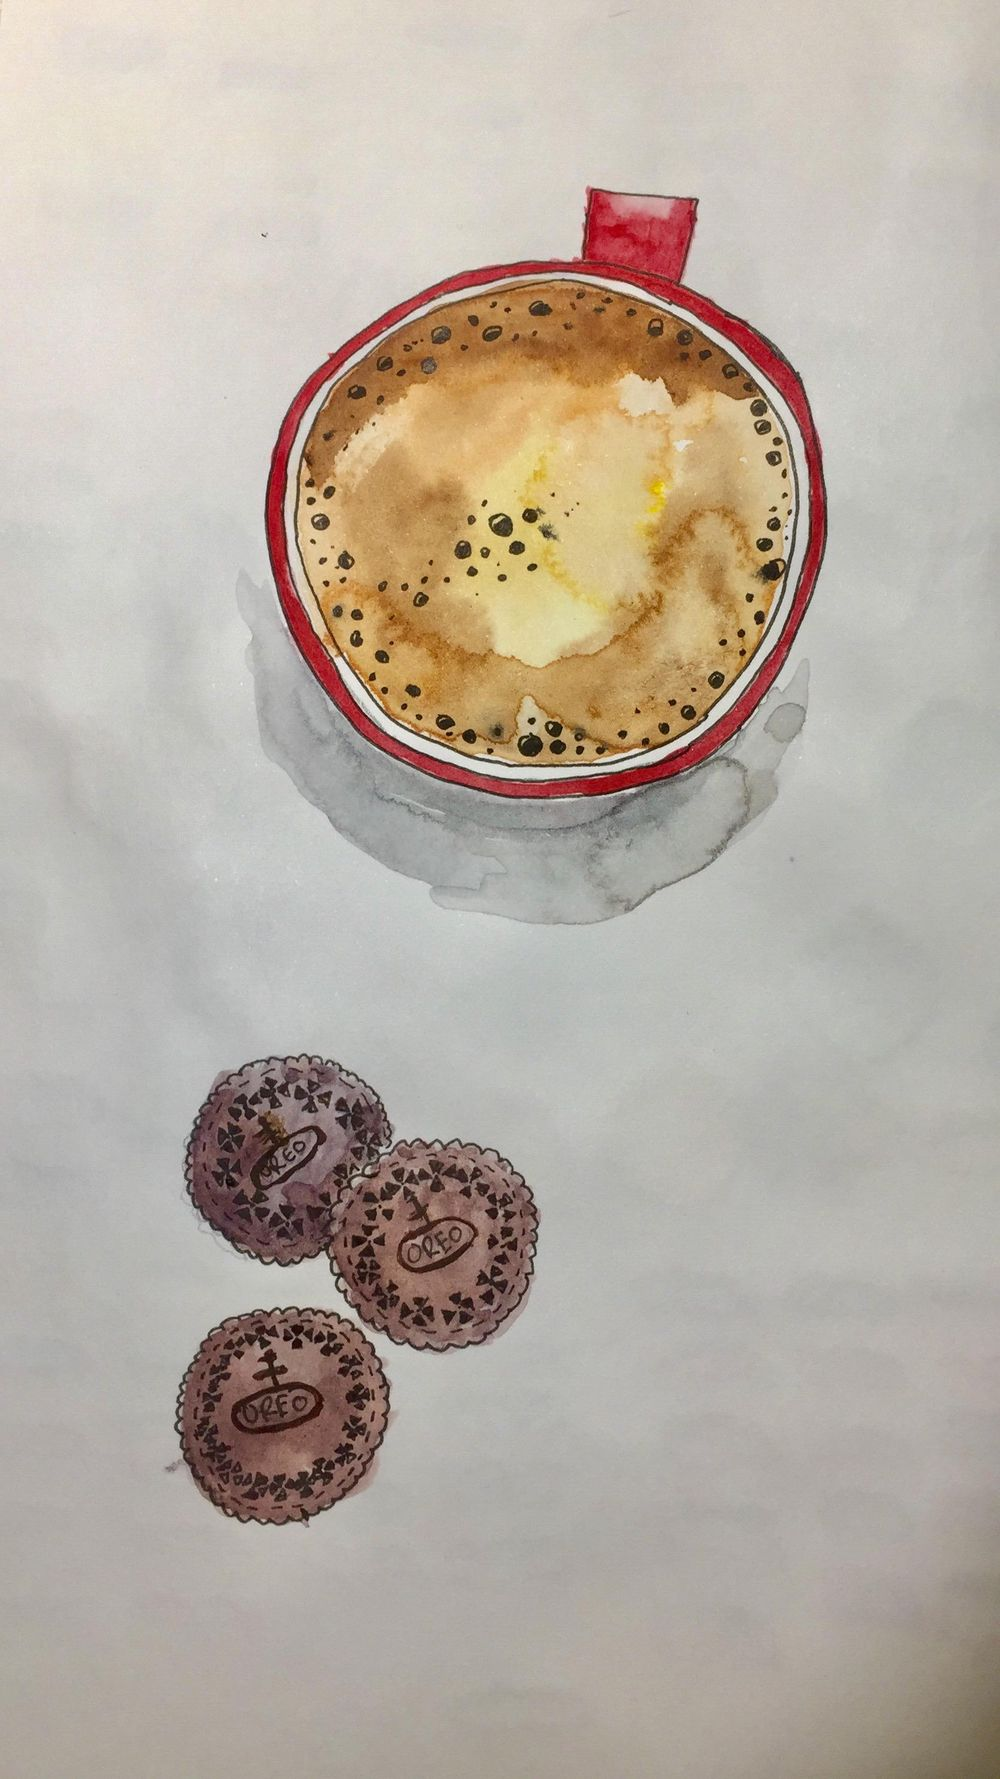 Coffe with Oreos - image 1 - student project